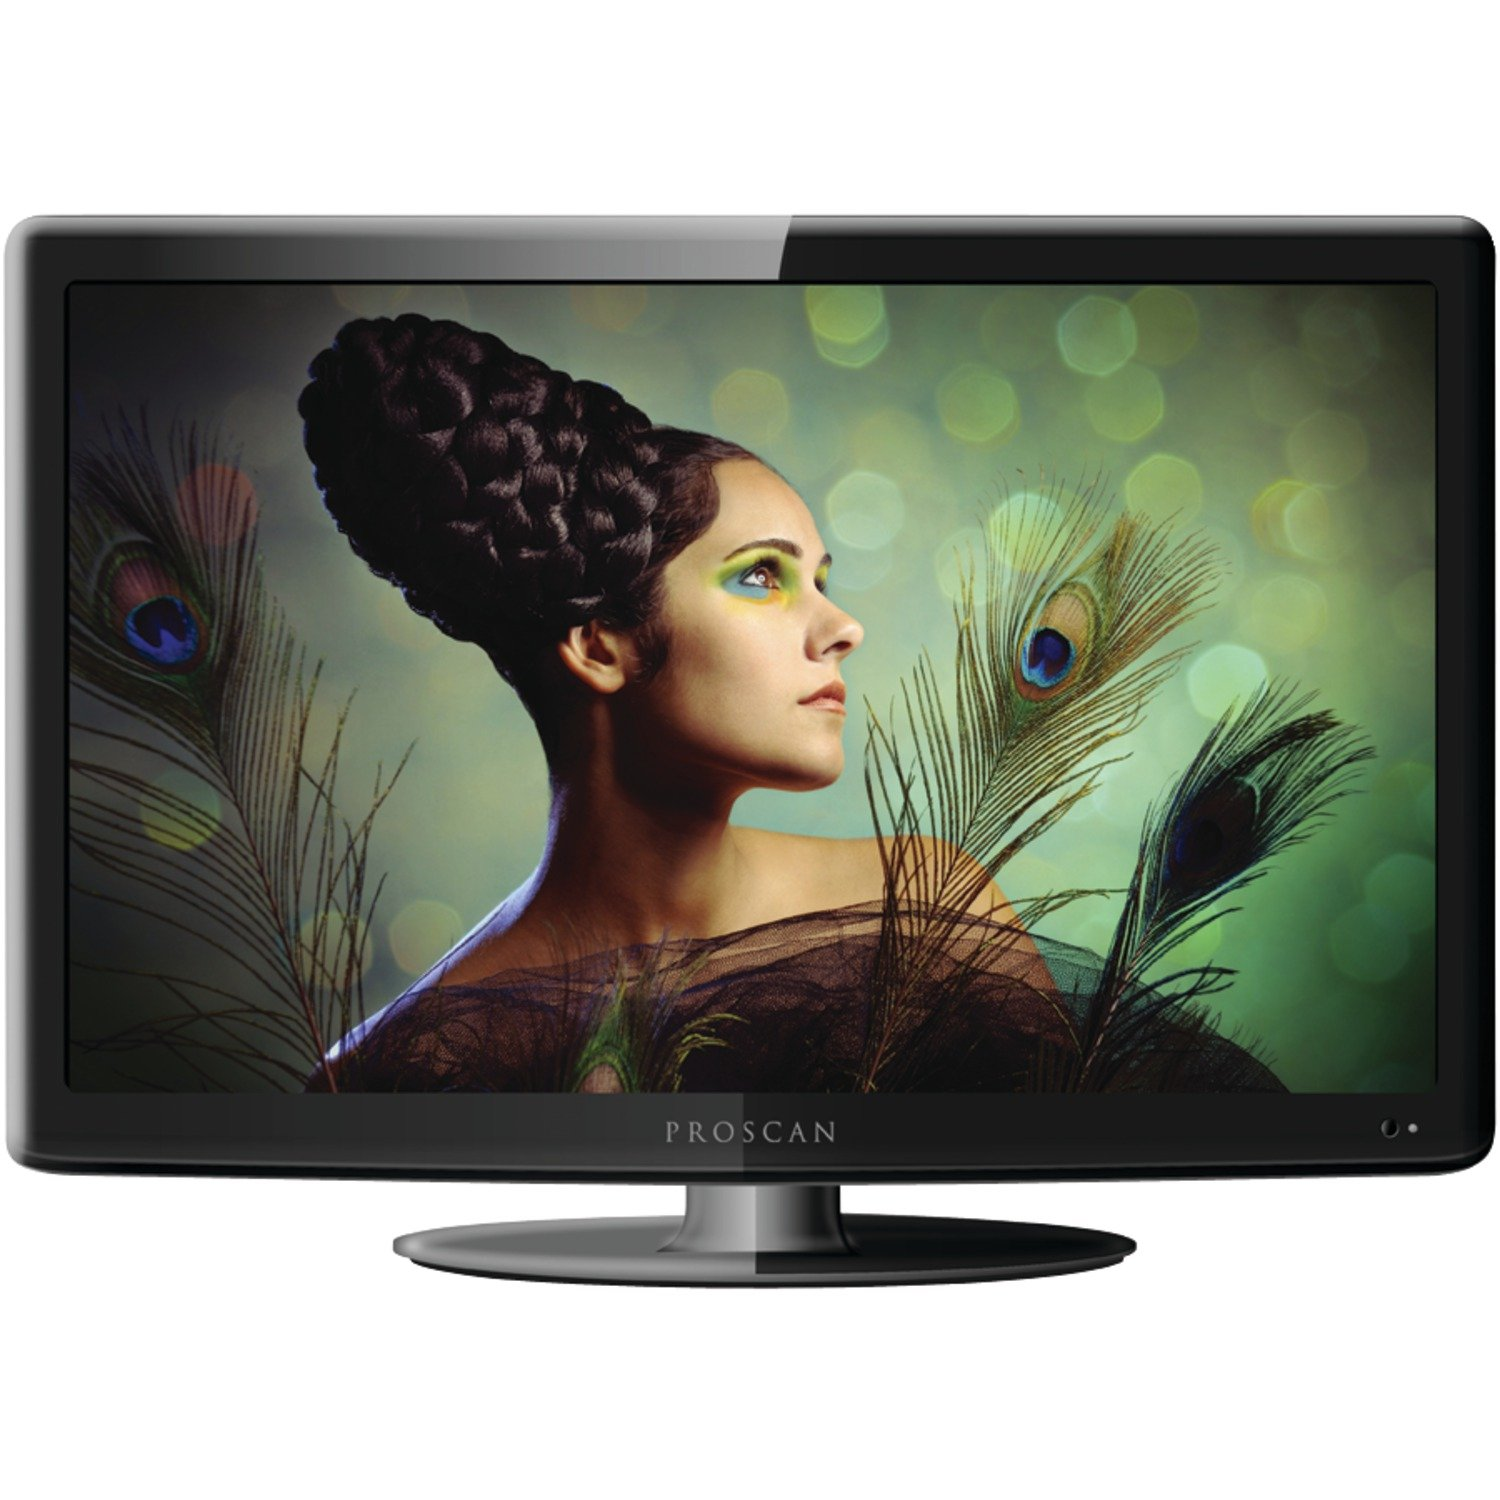 PROSCAN PLEDV1945A-B 19-Inch 720p 60Hz LED TV-DVD Combo Freedom From Cable Bundle by PROSCAN